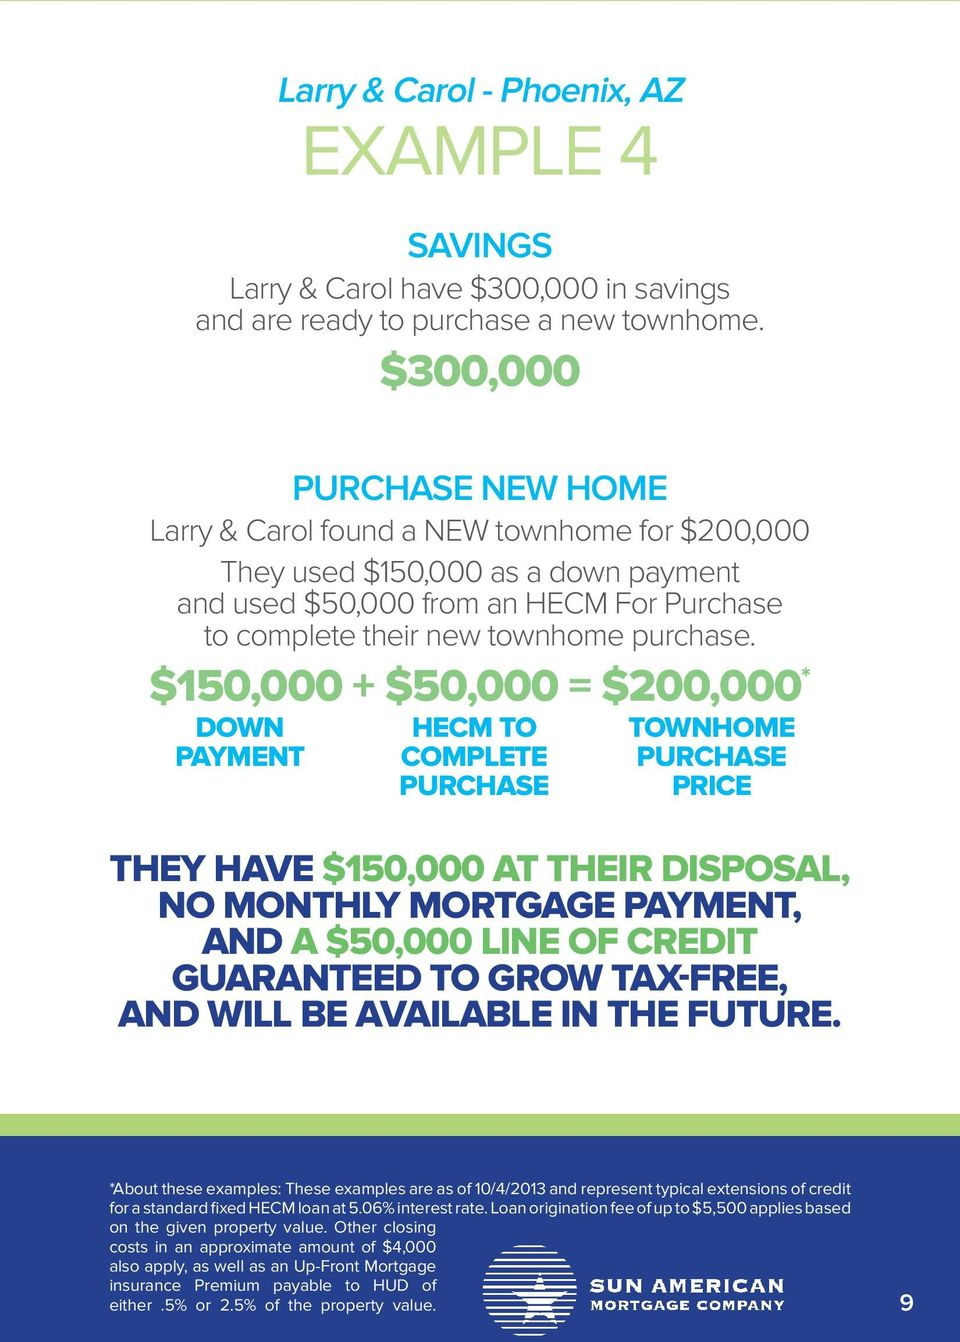 $150,000 + $50,000 = $200,000 * DOWN PAYMENT HECM TO COMPLETE TOWNHOME PRICE THEY HAVE $150,000 AT THEIR DISPOSAL, NO MONTHLY MORTGAGE PAYMENT, AND A $50,000 LINE OF CREDIT GUARANTEED TO GROW